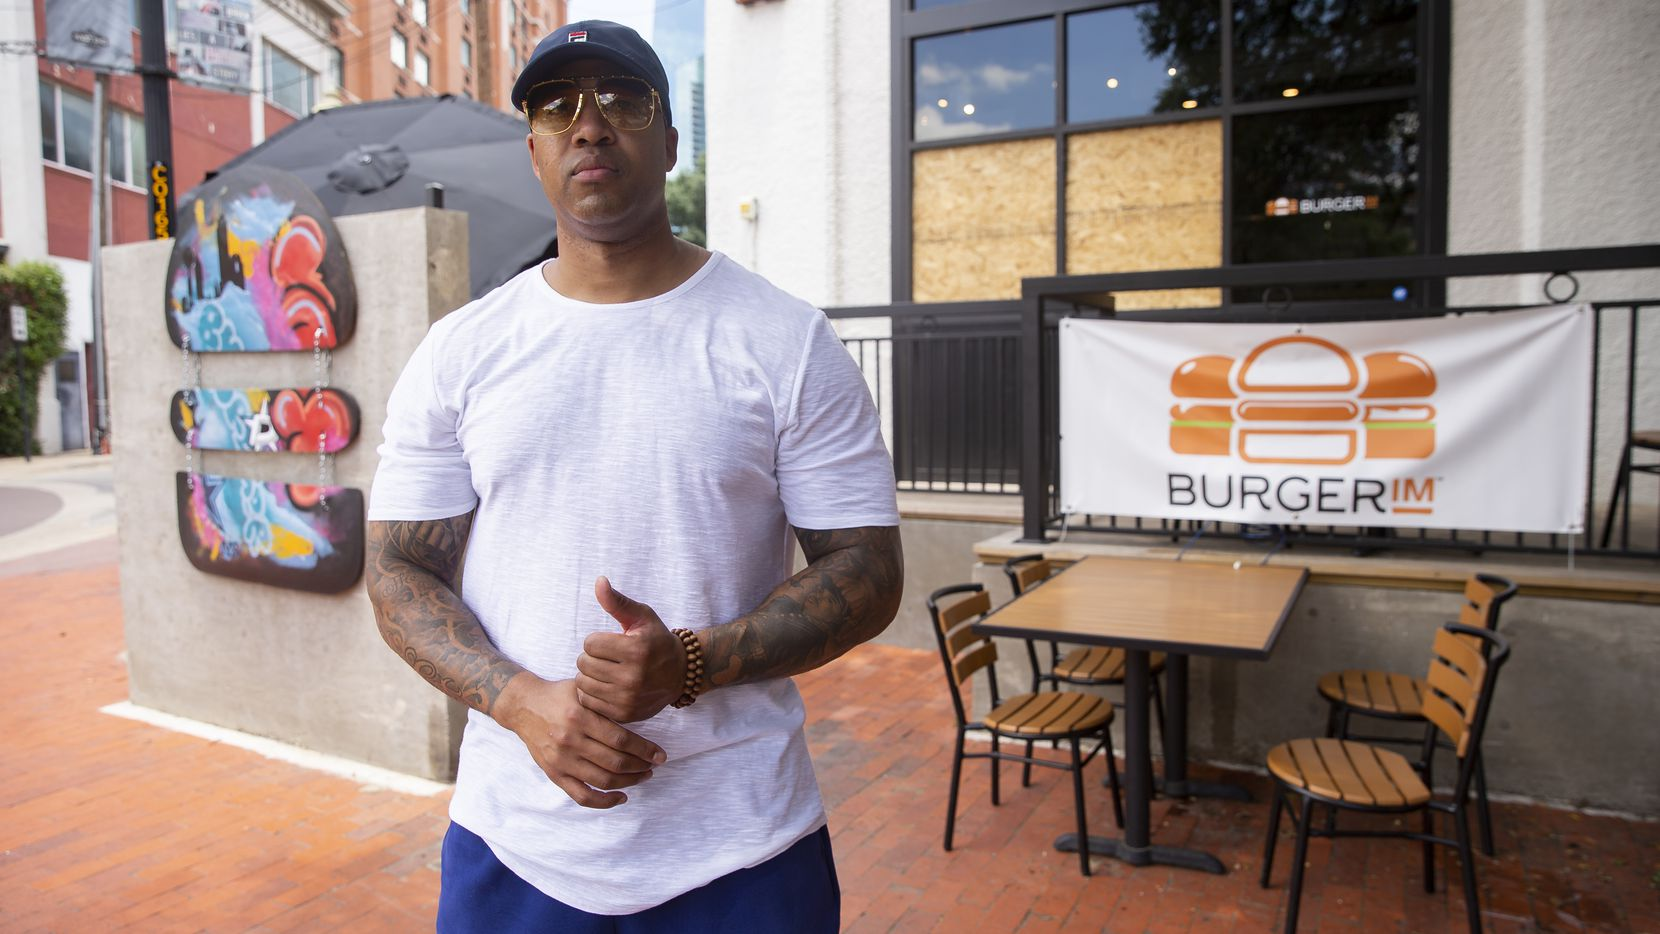 Owner Wes Williams stands outside of BurgerIM on Sunday morning, May 31, 2020 in Dallas. Many in the community have shown up to support the West End restaurant after it was damaged by protesters Friday night. (Juan Figueroa/ The Dallas Morning News)